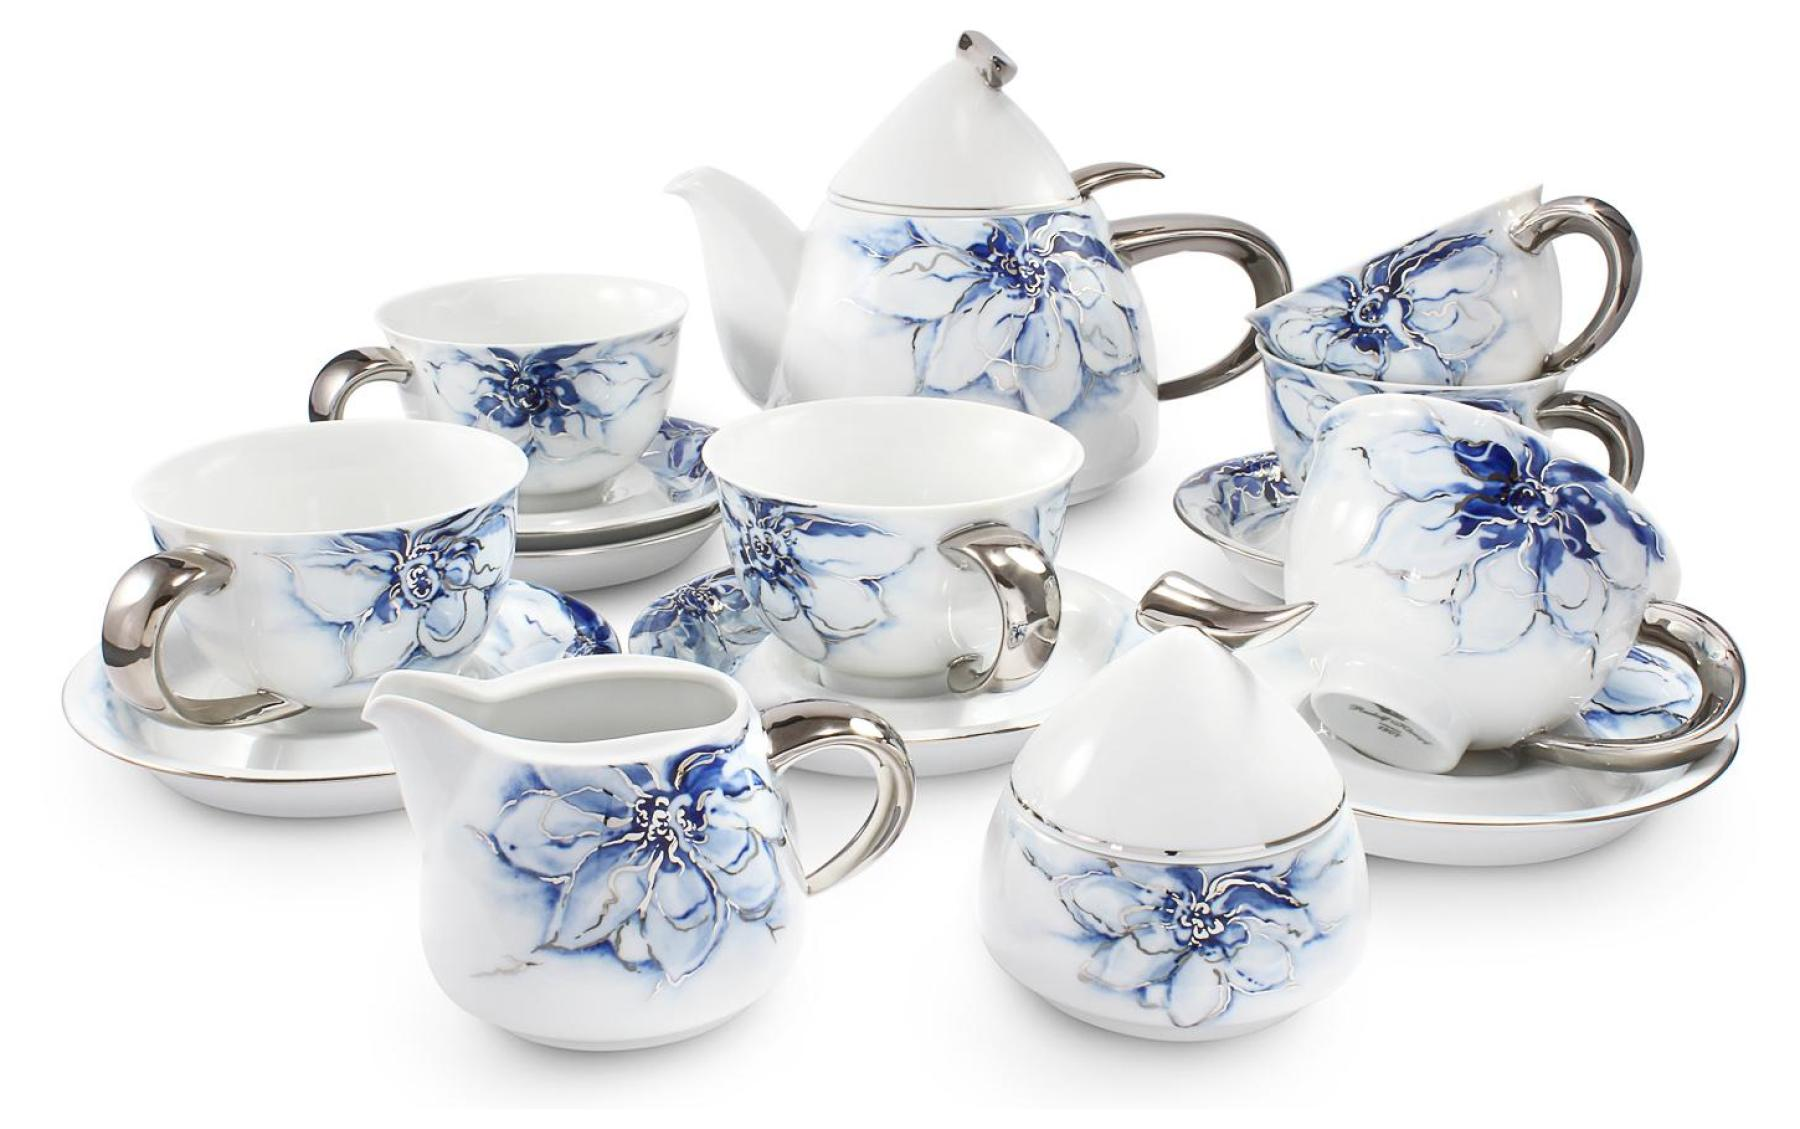 Tea service 15-piece cobalt blue